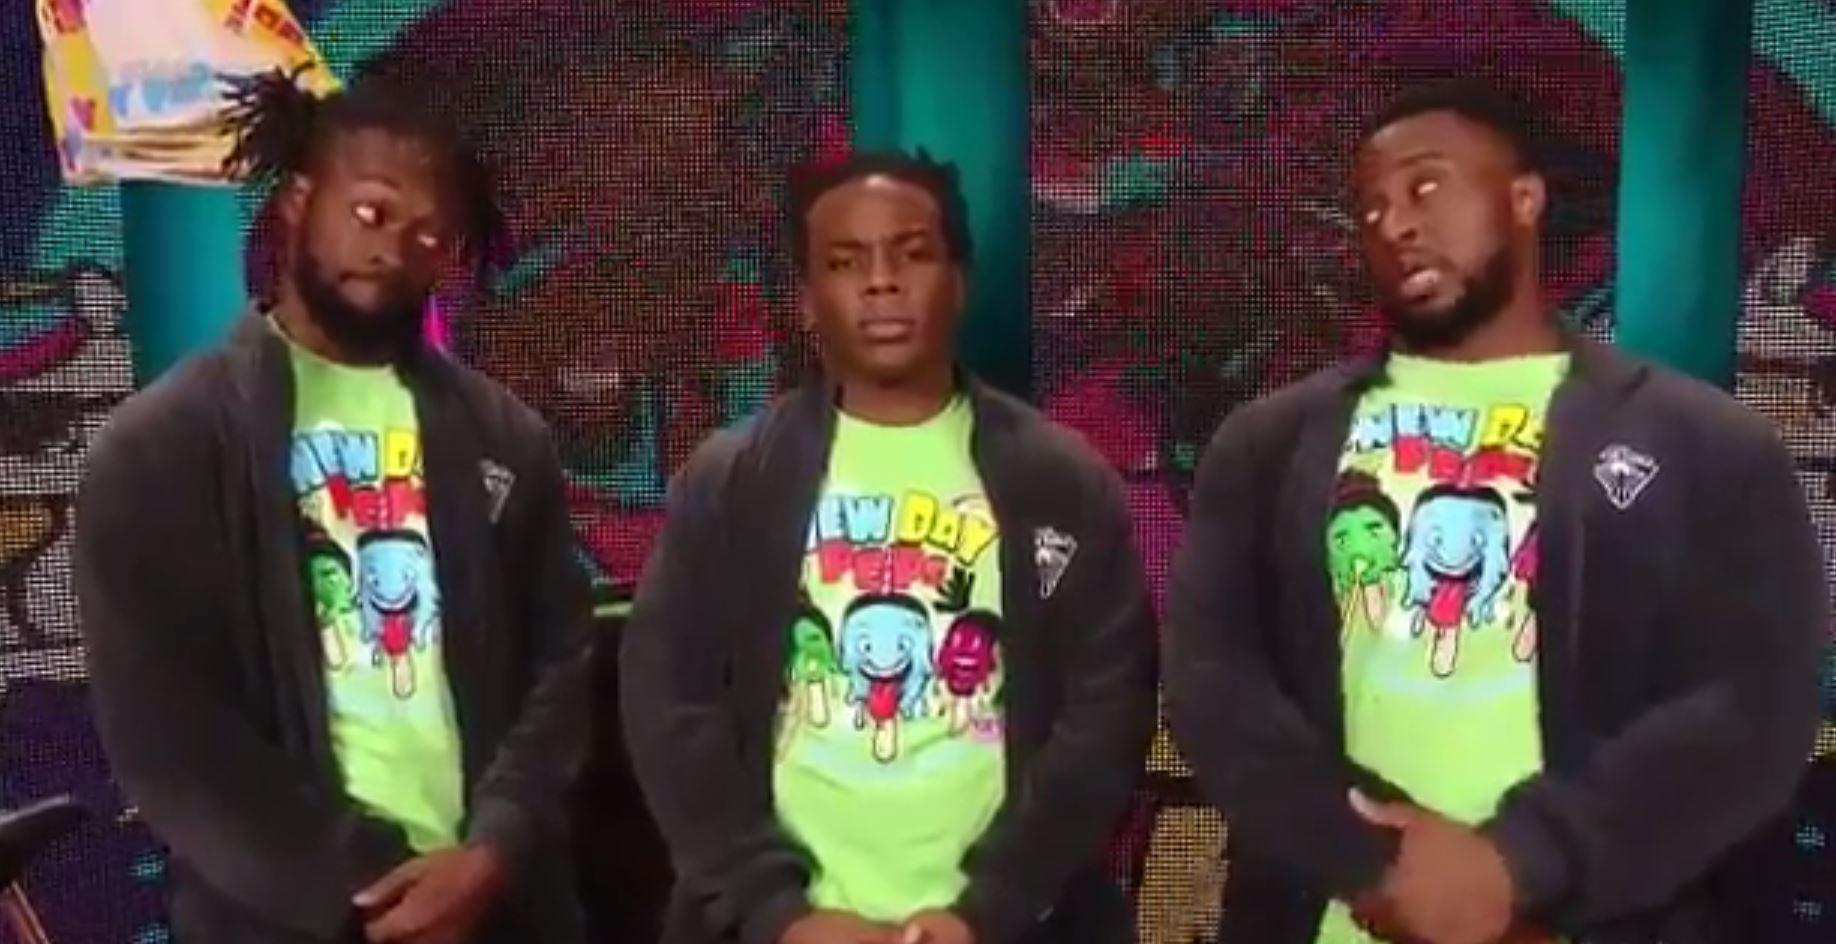 Paige sex tape: Xavier Woods looks sheepish on Raw as New ...